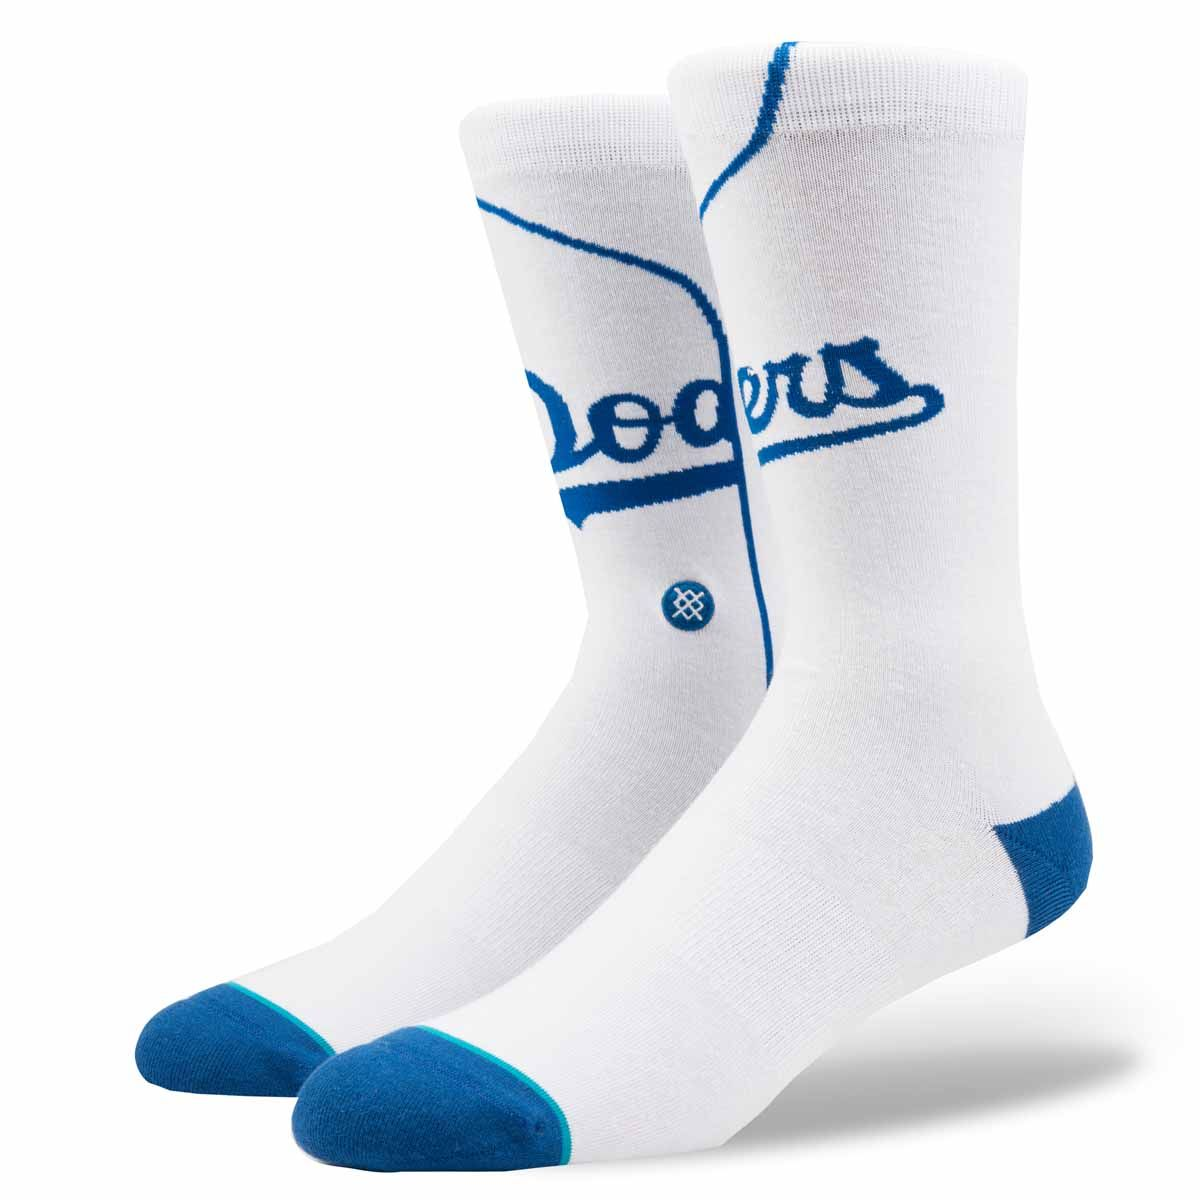 Grab this Stance Los Angeles Dodgers Home White Socks! Go